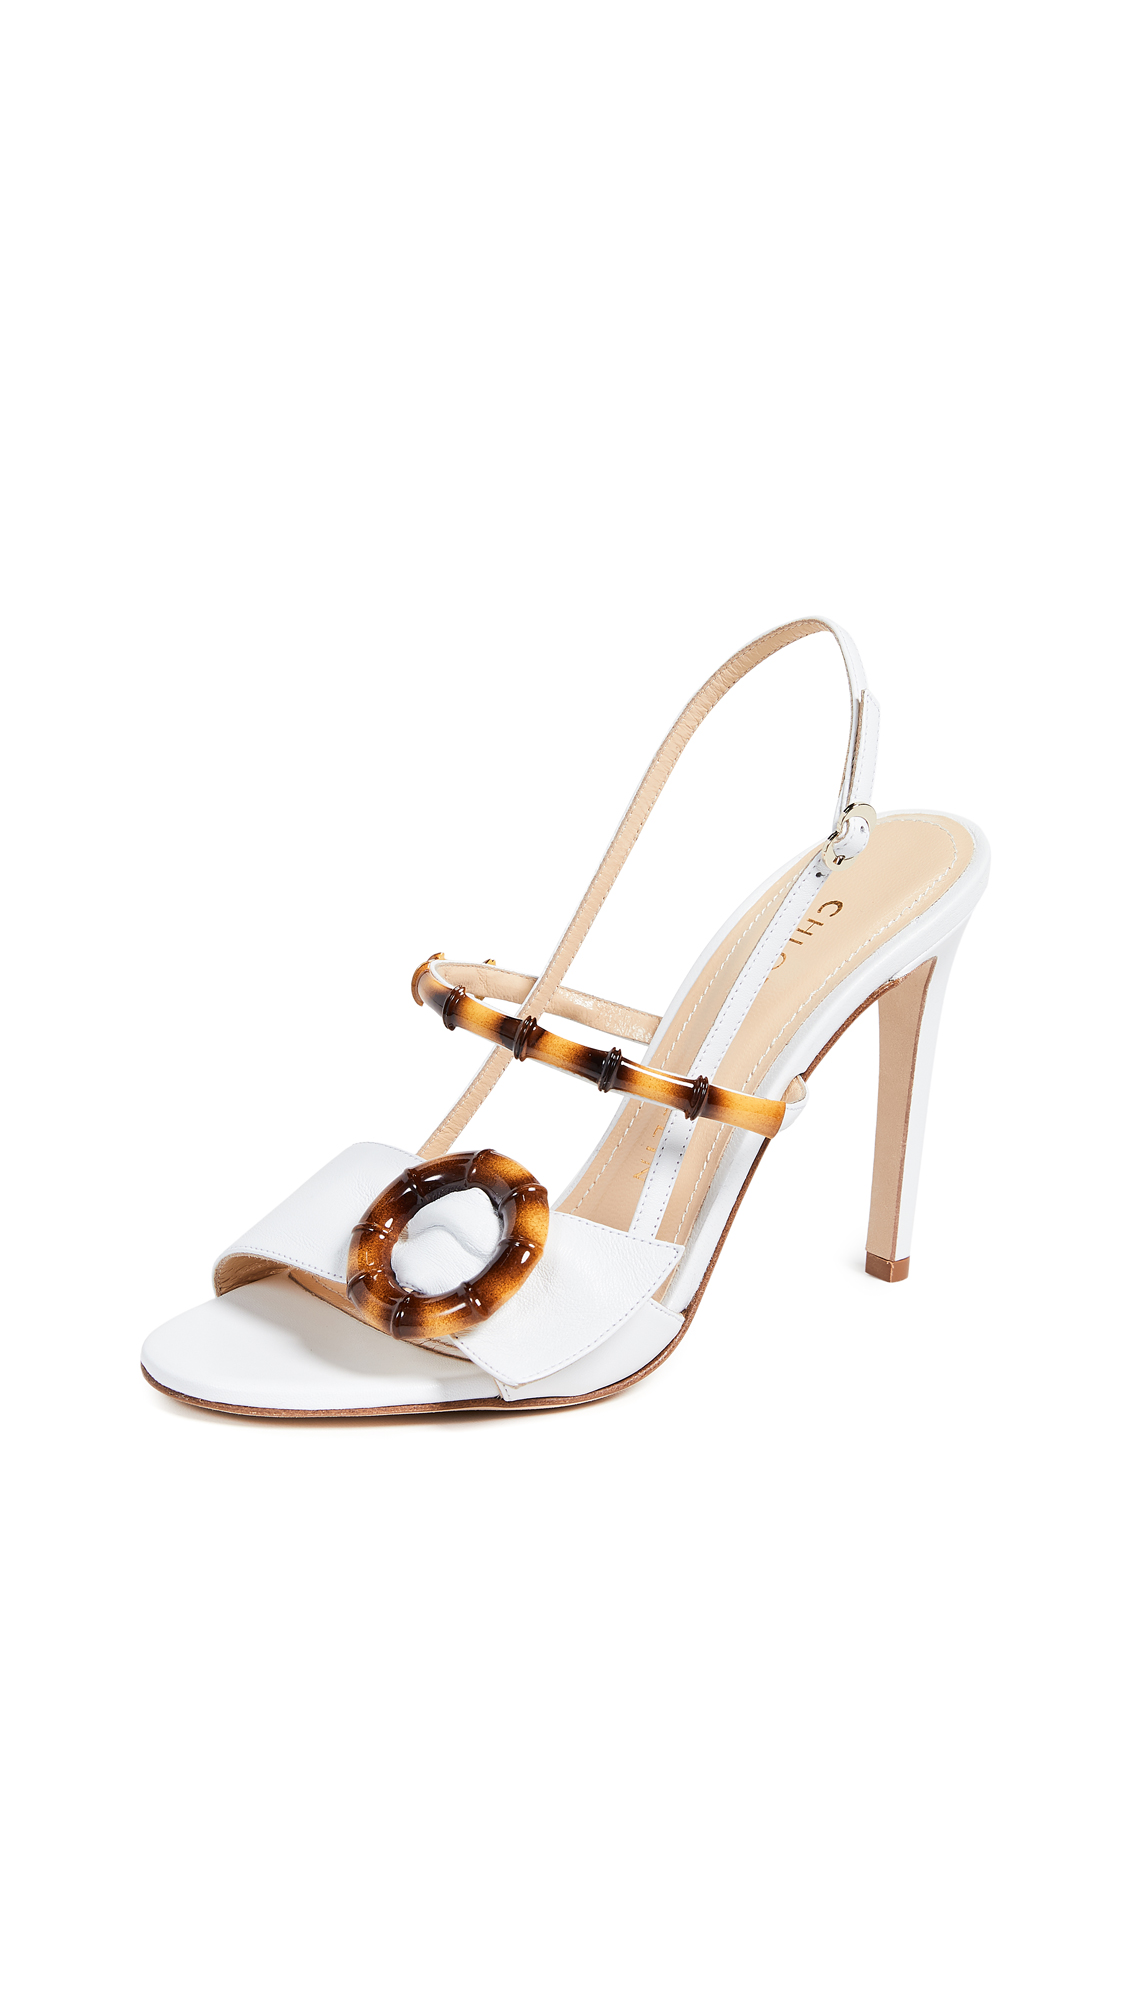 Chloe Gosselin Celeste Sandals - White